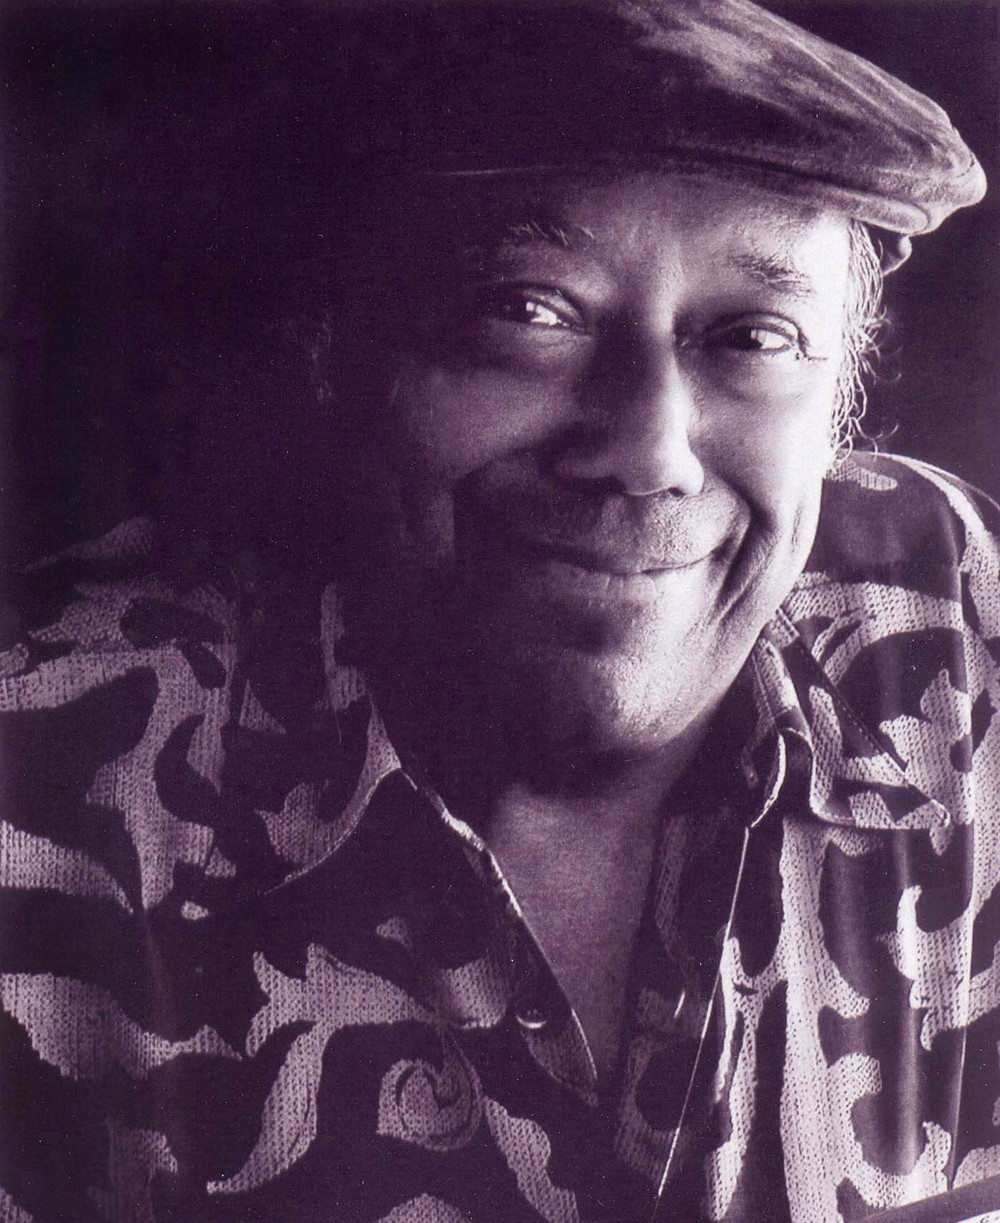 horace black singles Horace faith (born horace smith, jamaica) is a jamaican reggae singer he is best known for his cover of the checkmates, ltd song, black pearl, which reached number 13 in the uk singles chart in 1970.